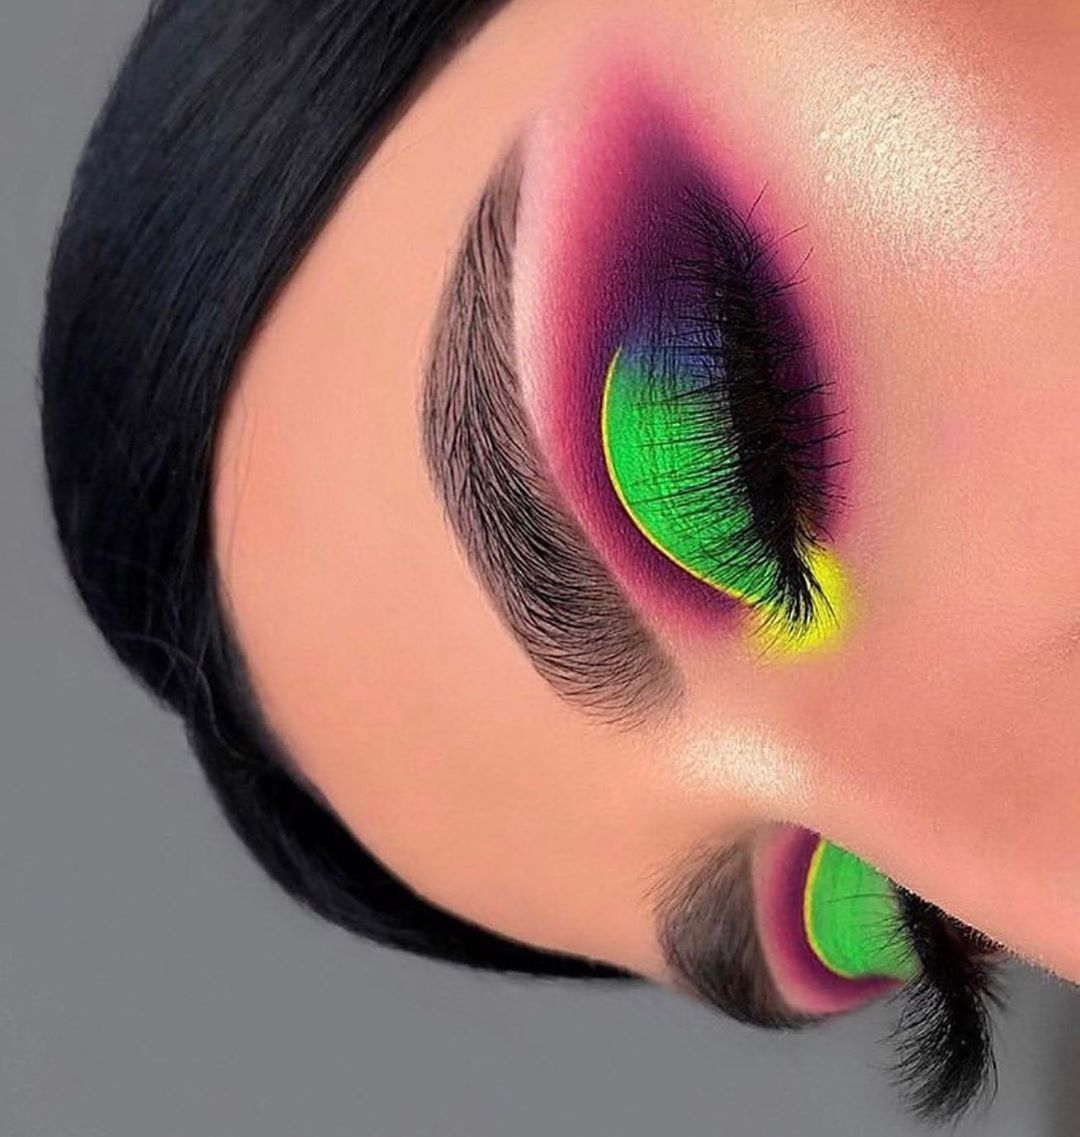 """Cosmetic Glitter & Pigments on Instagram: """"'Key Lime Pie' + 'Pineapple Dream' Pure Neon Pigments were used for this look 💚 @LYCHEEXO - www.lycheexo.com - 💛💚💛💚💛💚 Makeup by the…"""""""